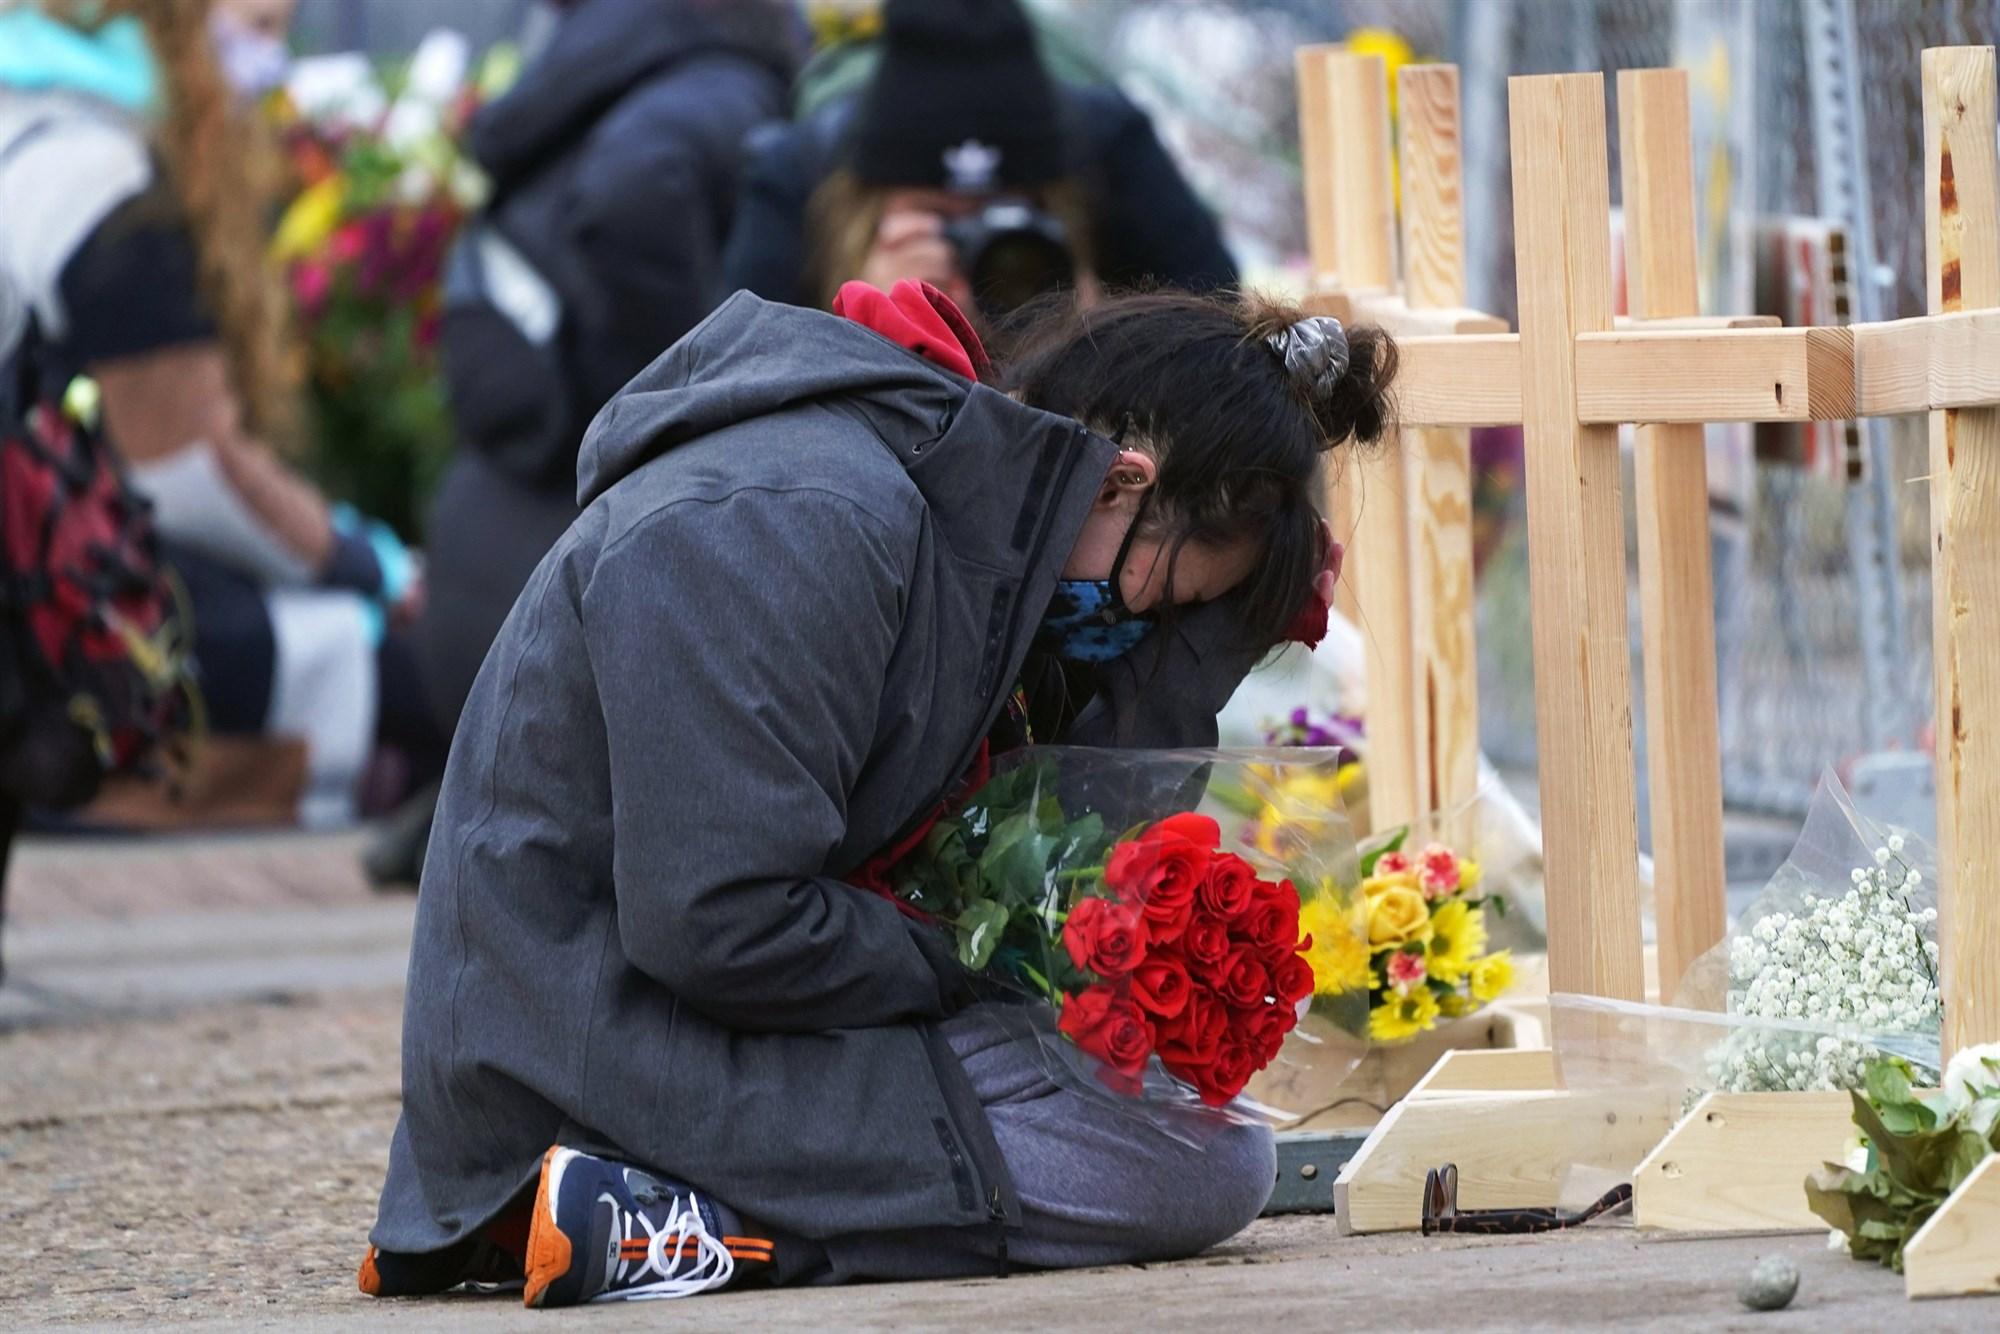 Saddened but not surprised': Boulder residents say shooting is a reminder of a new reality